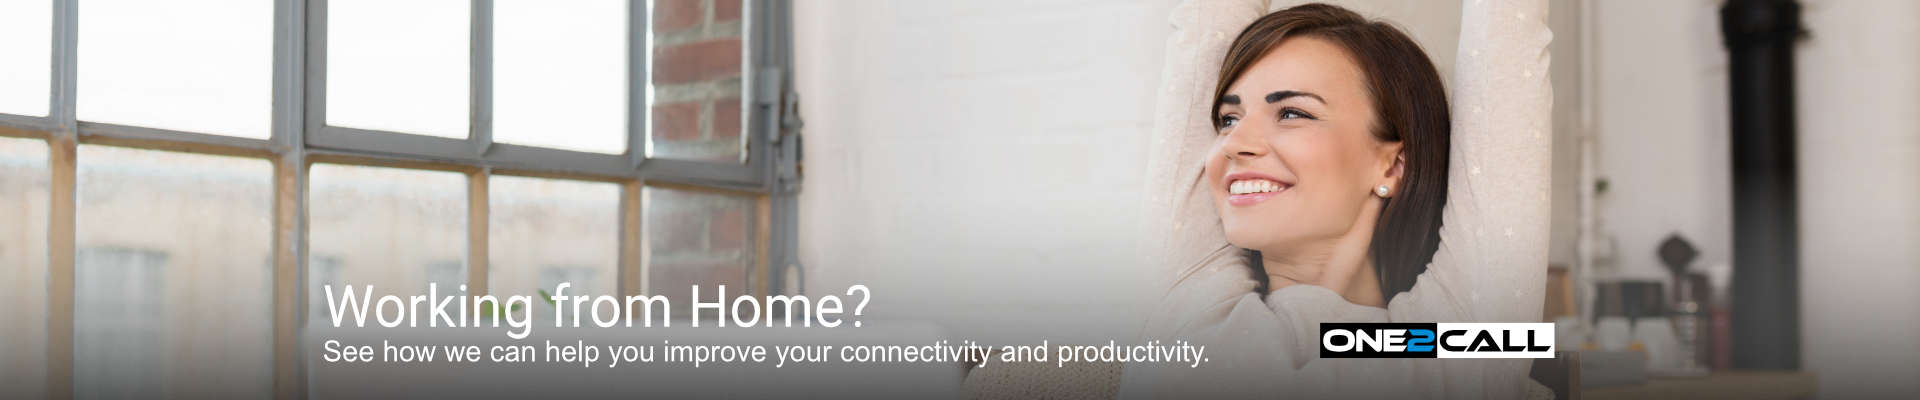 We can help you improve connectivity whilst working from home.